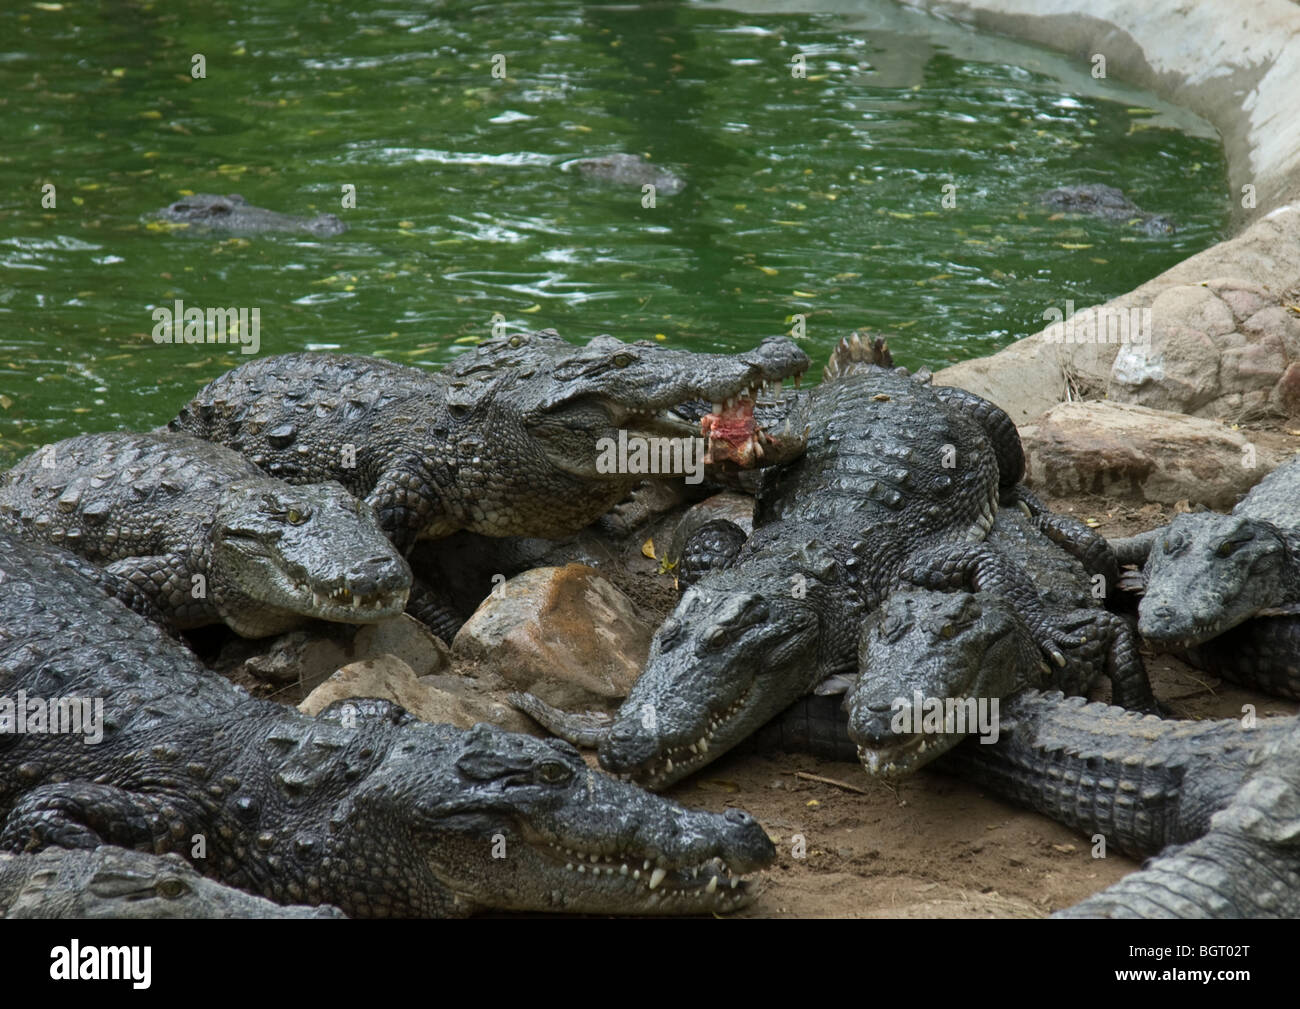 At feeding time large herd of young crocodiles come out of their water pool to catch amazing throw of meat from Stock Photo